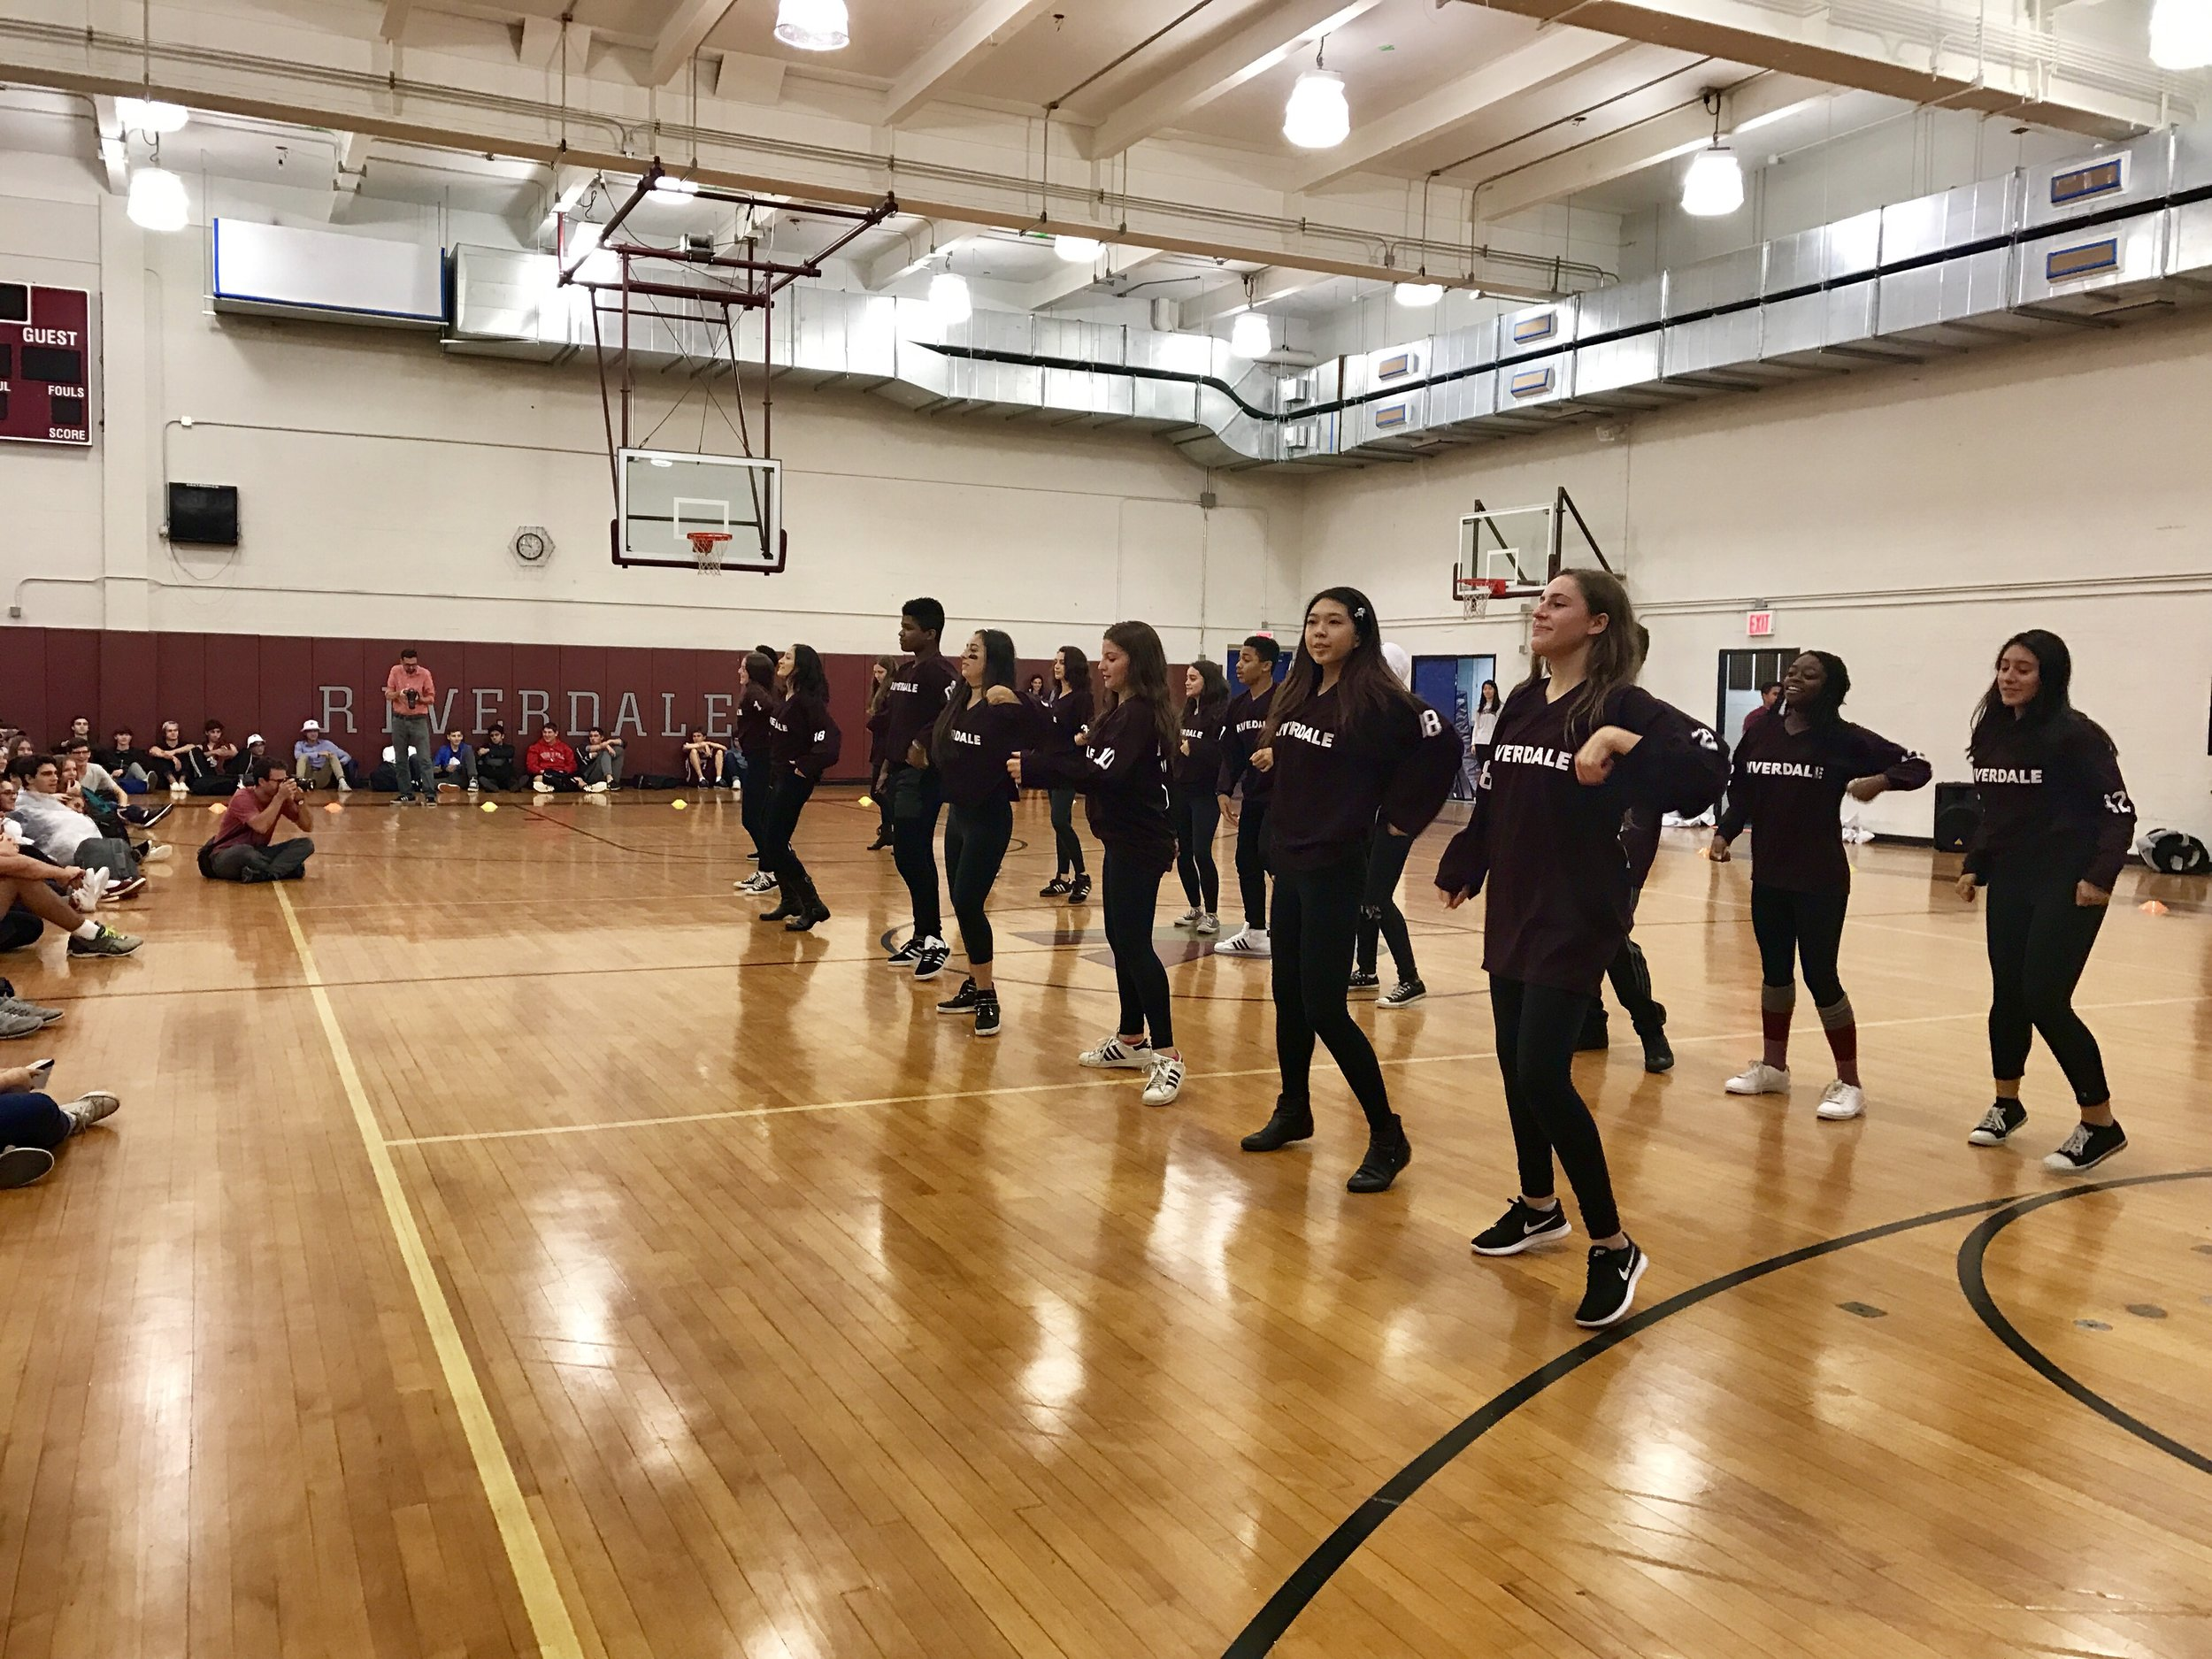 Photo courtesy of David Kenas Photography  The Riverdale Dance team performs at the Homecoming Prep Rally.